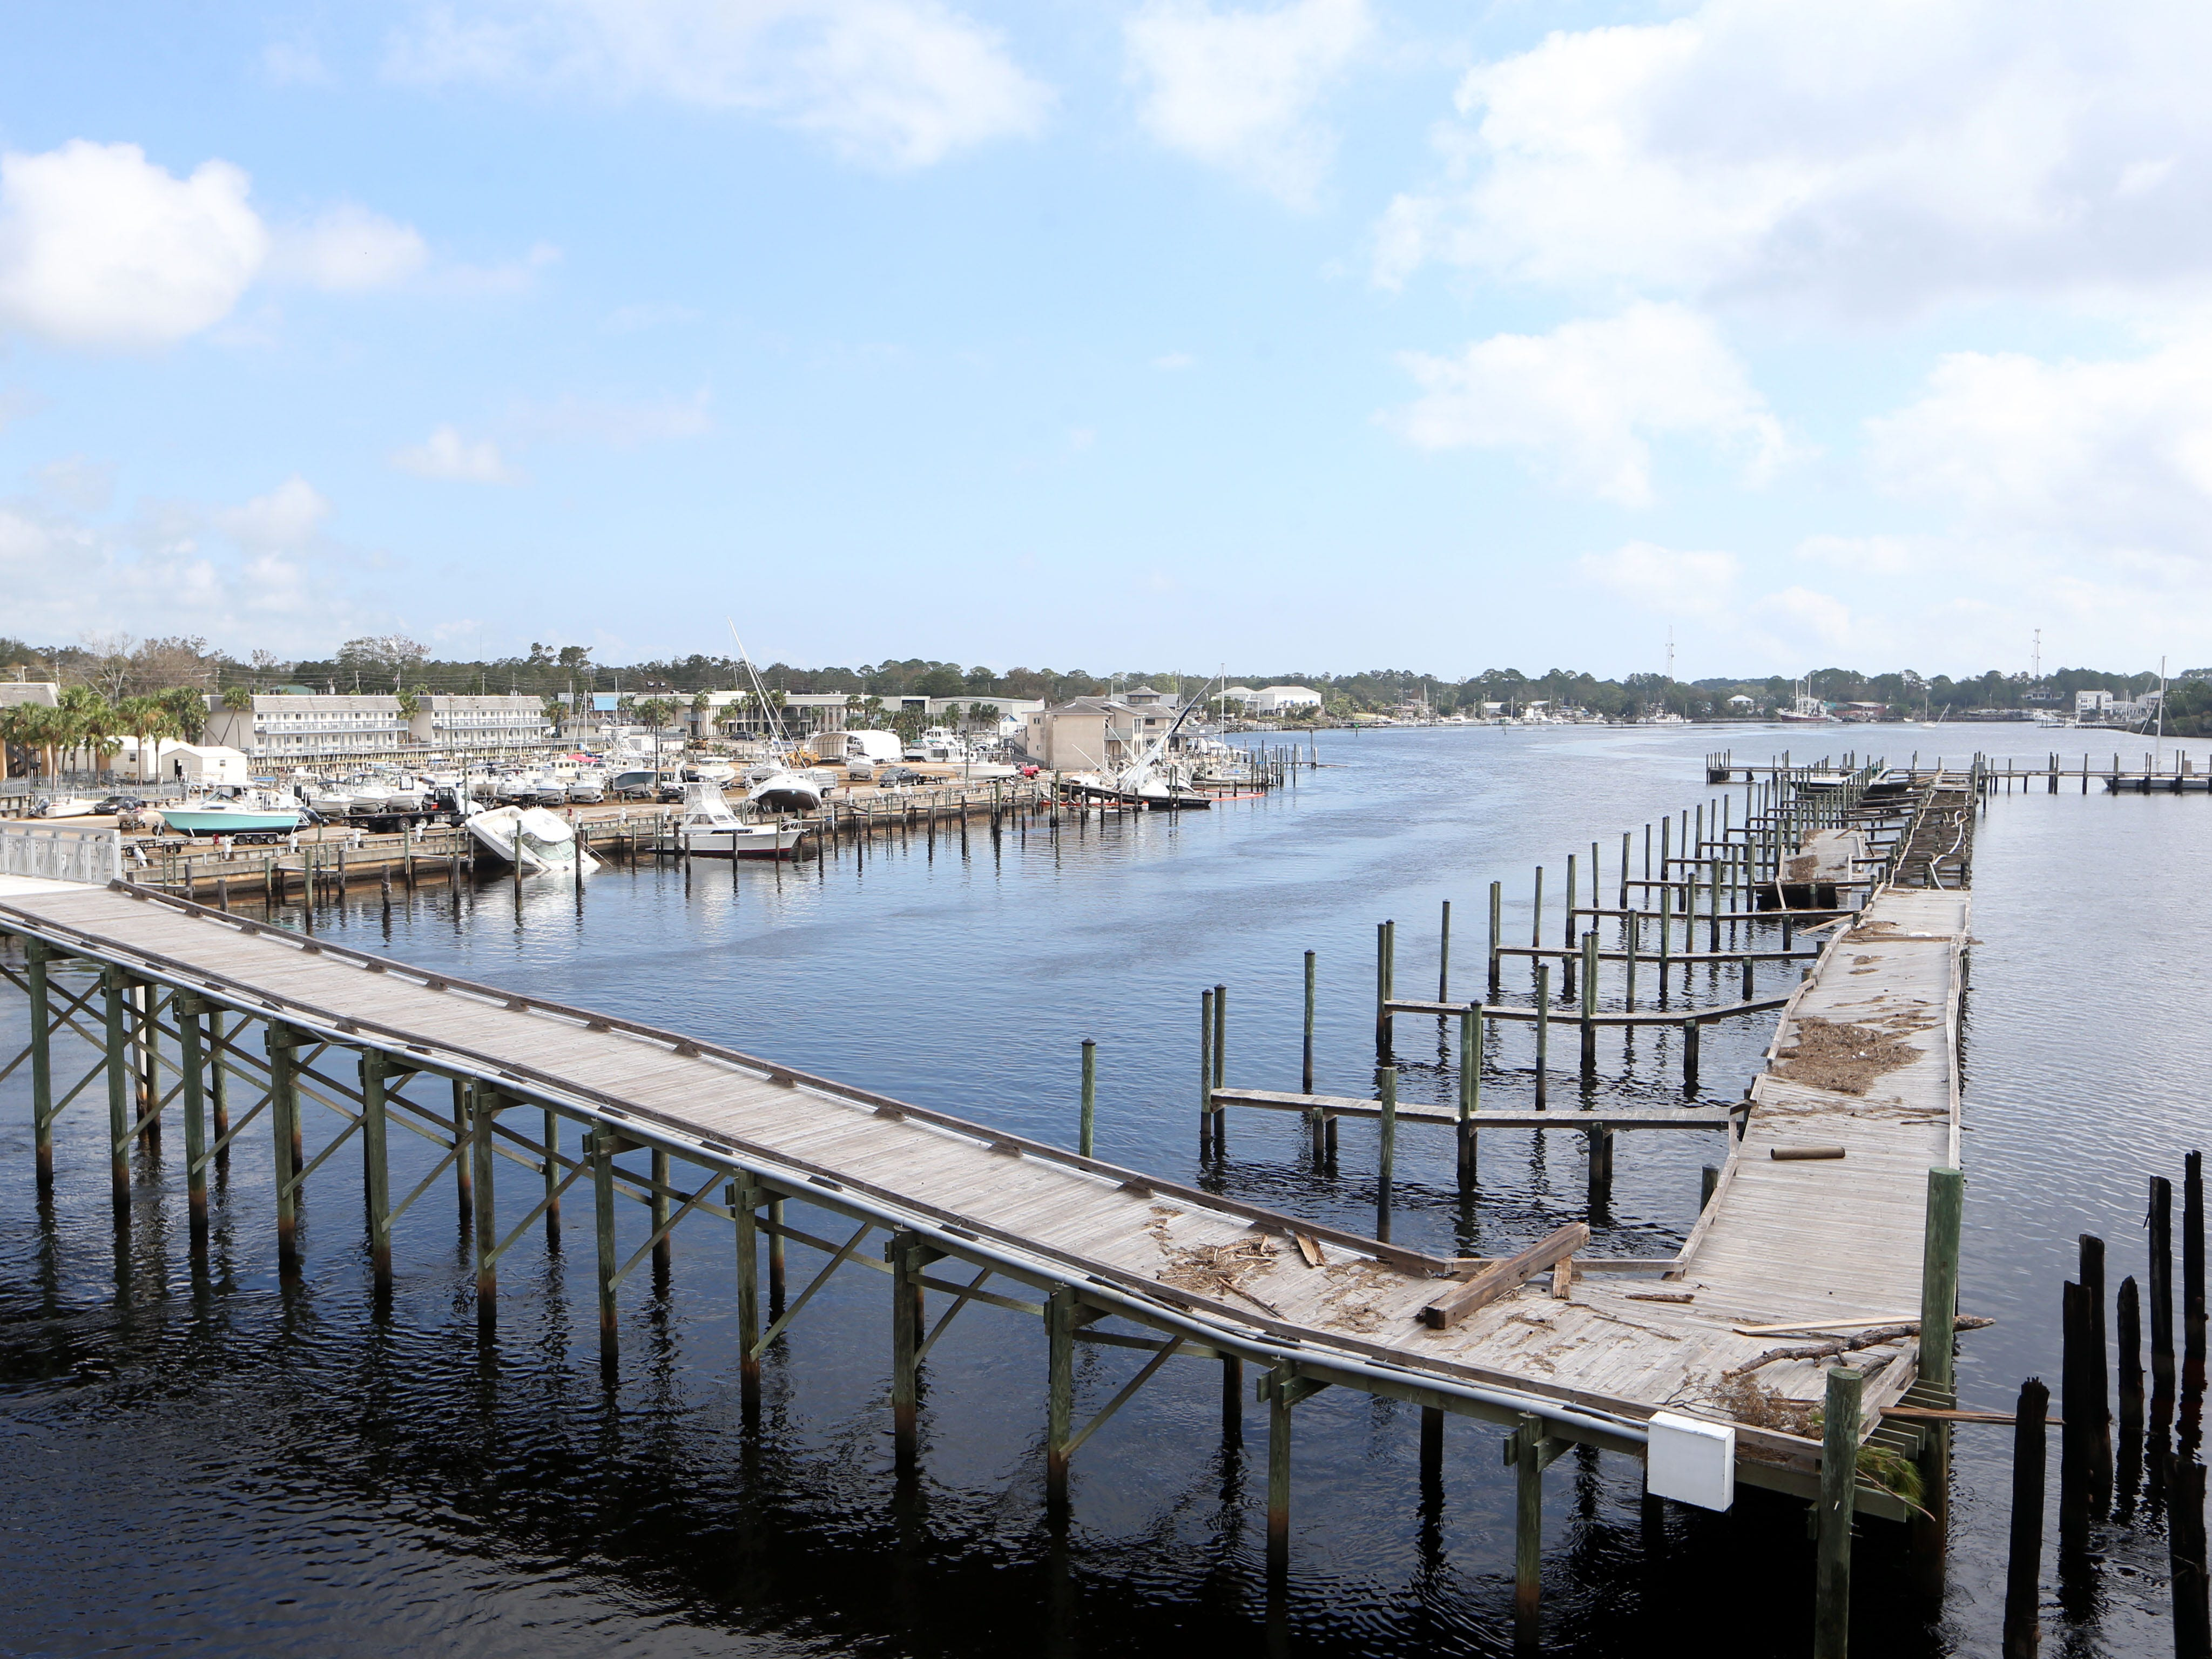 At the Carrabelle marina, boats are overturned and washed ashore on Monday, Oct. 15, 2018, after Hurricane Michael.